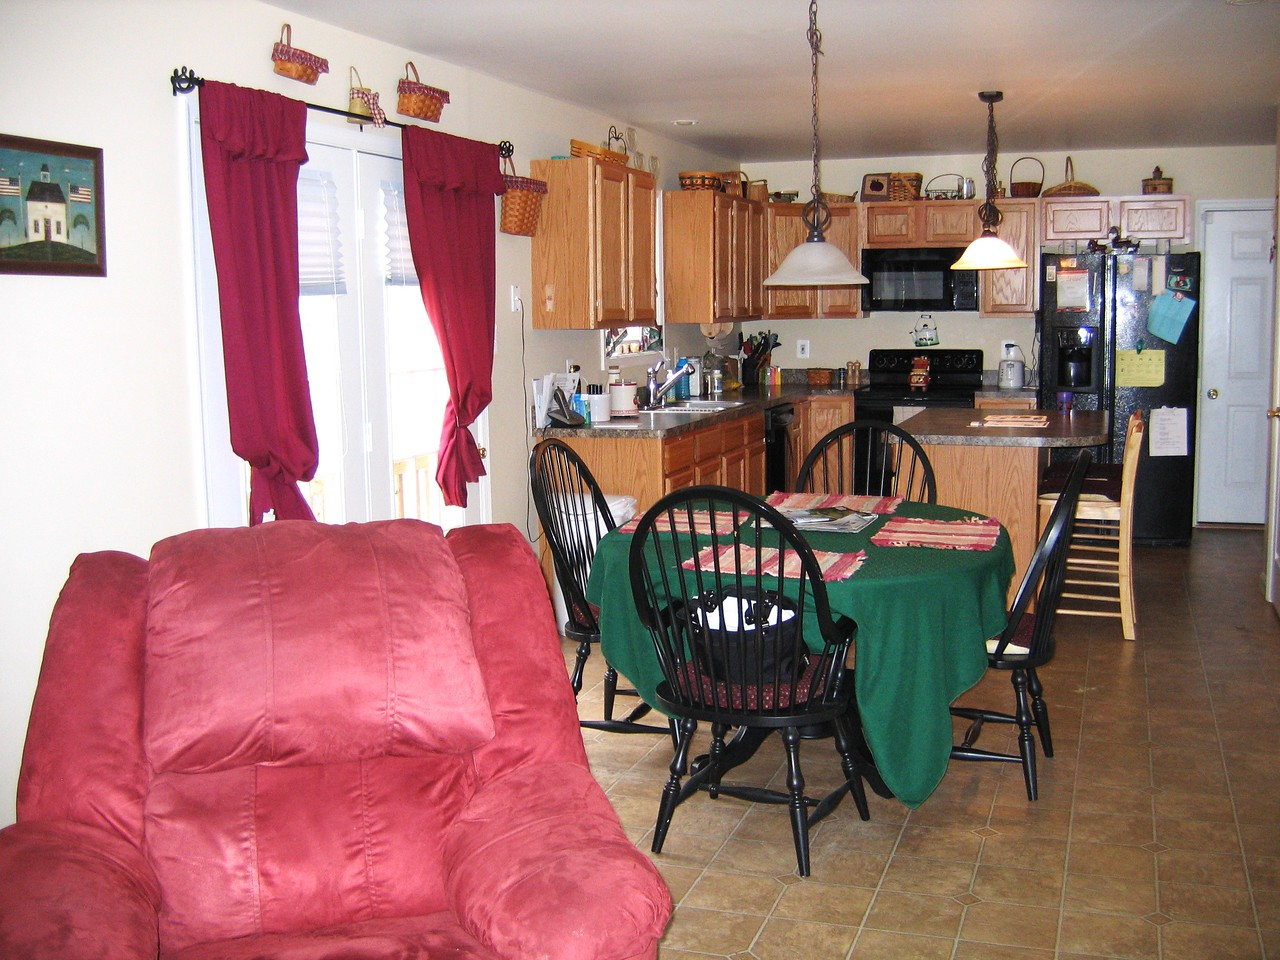 This picture is taken from the middle of the family room towards the kitchen.